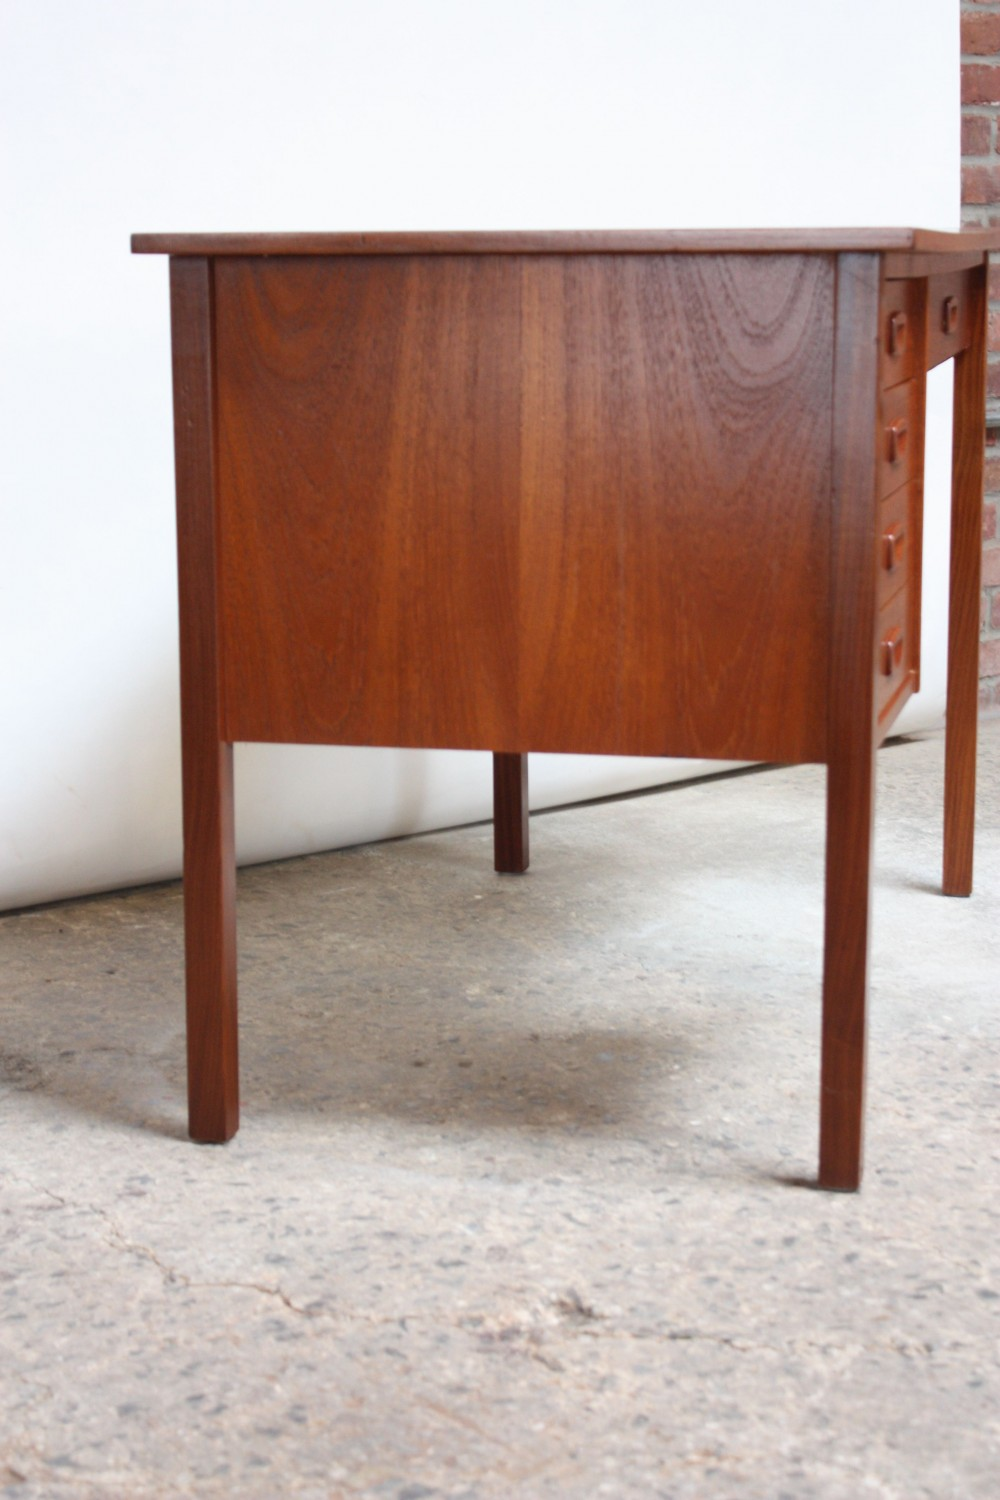 Home Desks Danish Modern Teak Student Desk